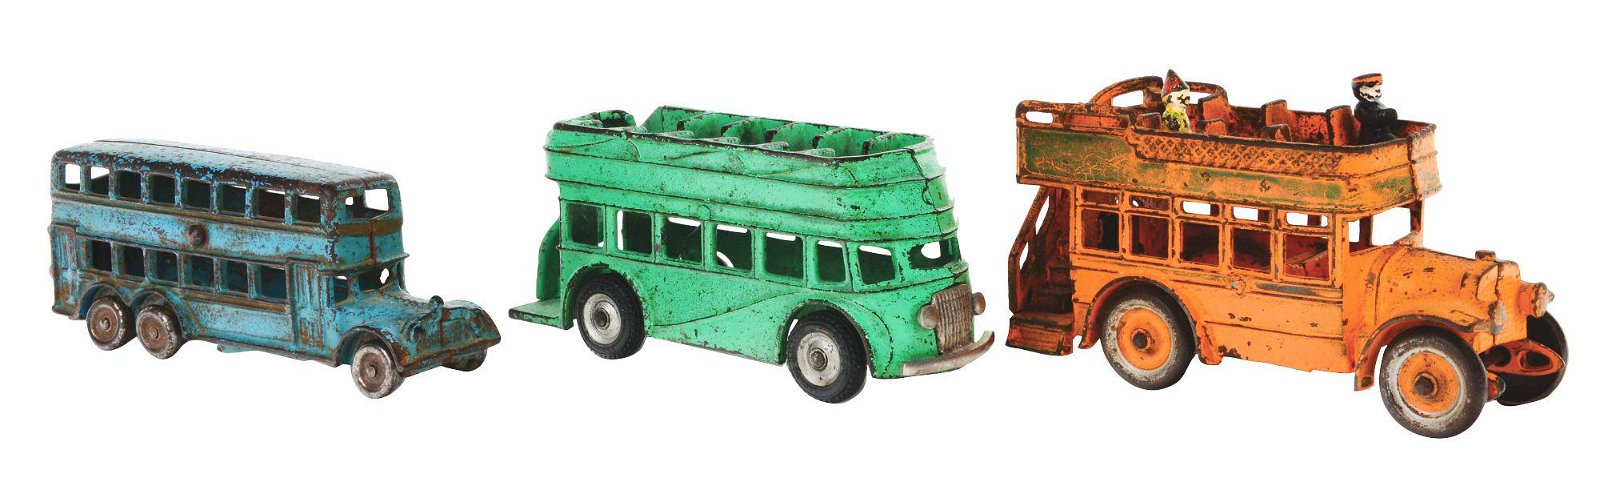 LOT OF THREE CAST IRON BUSES.